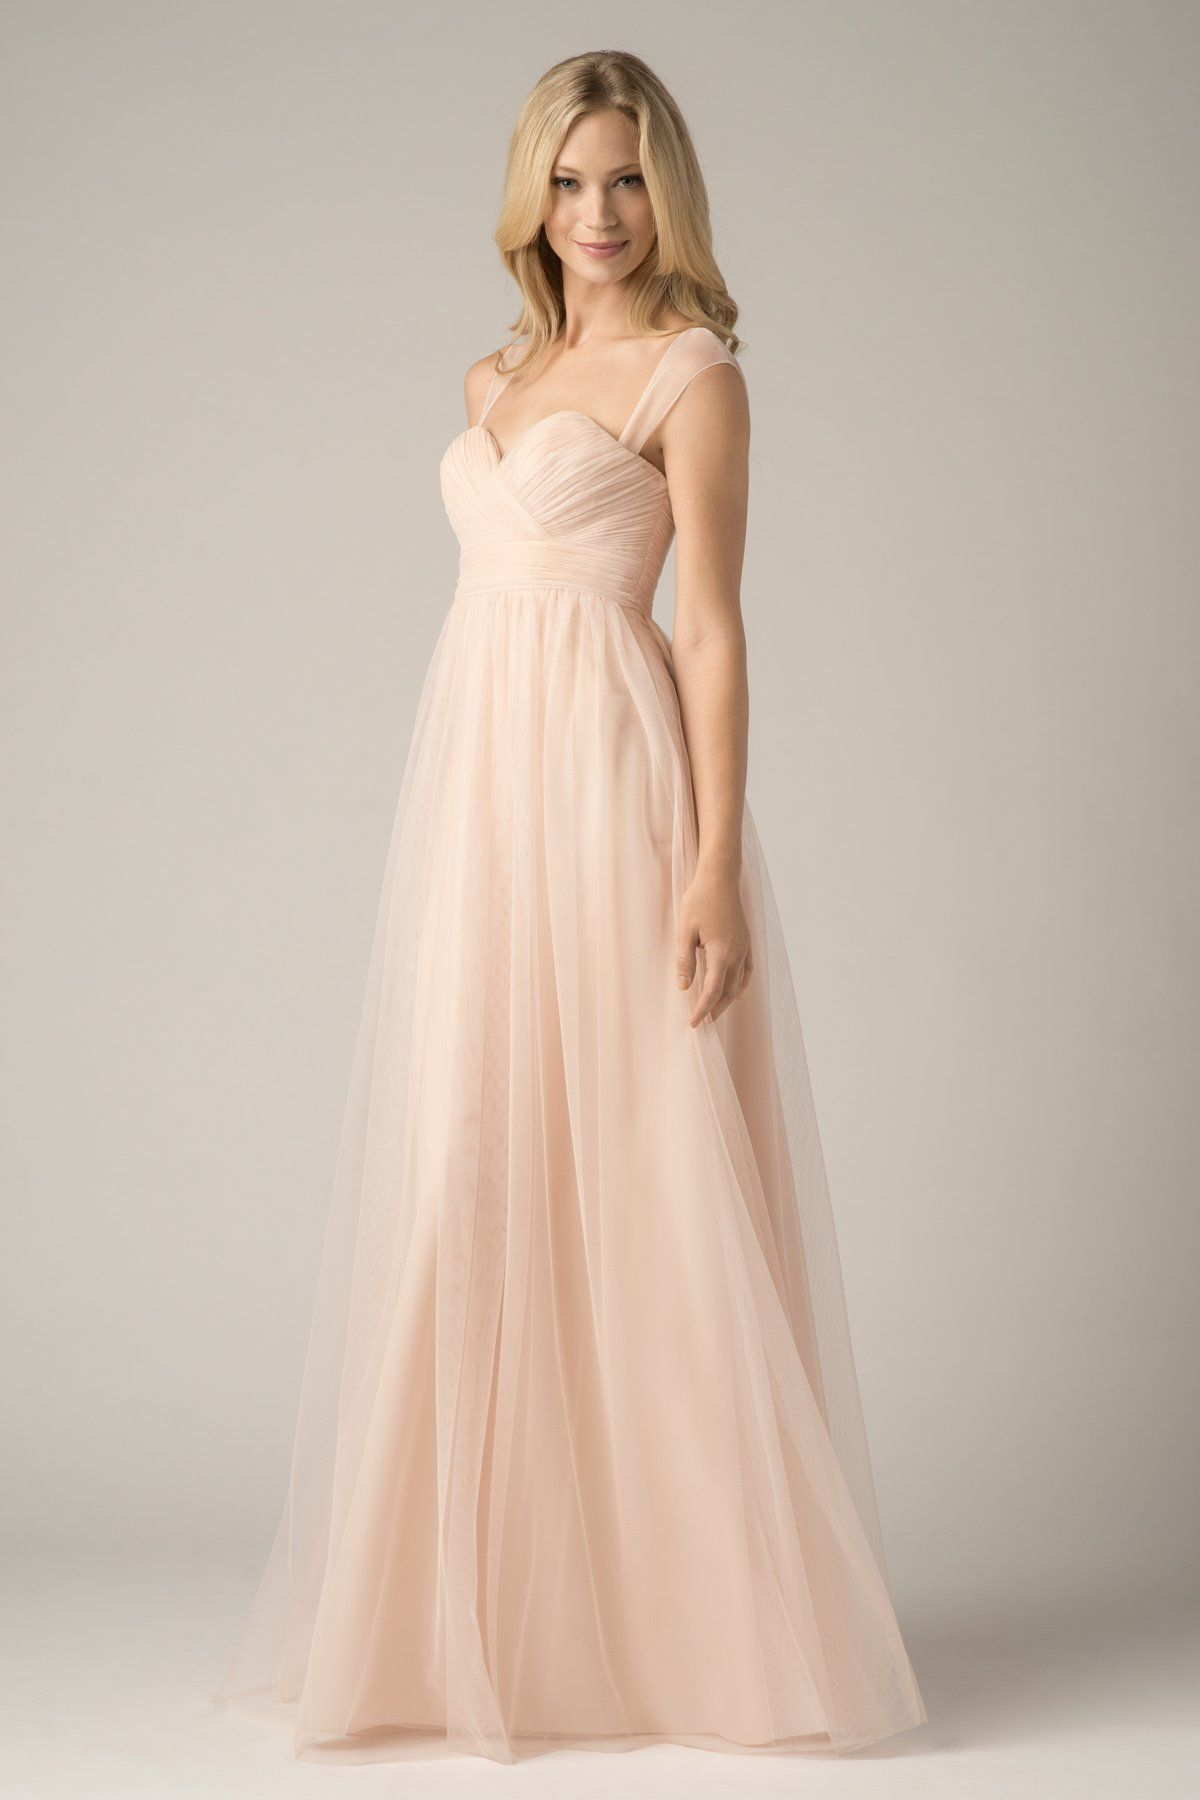 Wishesbridal pink tulle straps floor length princess maternity wishesbridal pink tulle straps floor length princess maternity bridesmaiddress b1wa0018 bridesmaid dress stylesmaternity bridesmaid dresseswedding ombrellifo Choice Image